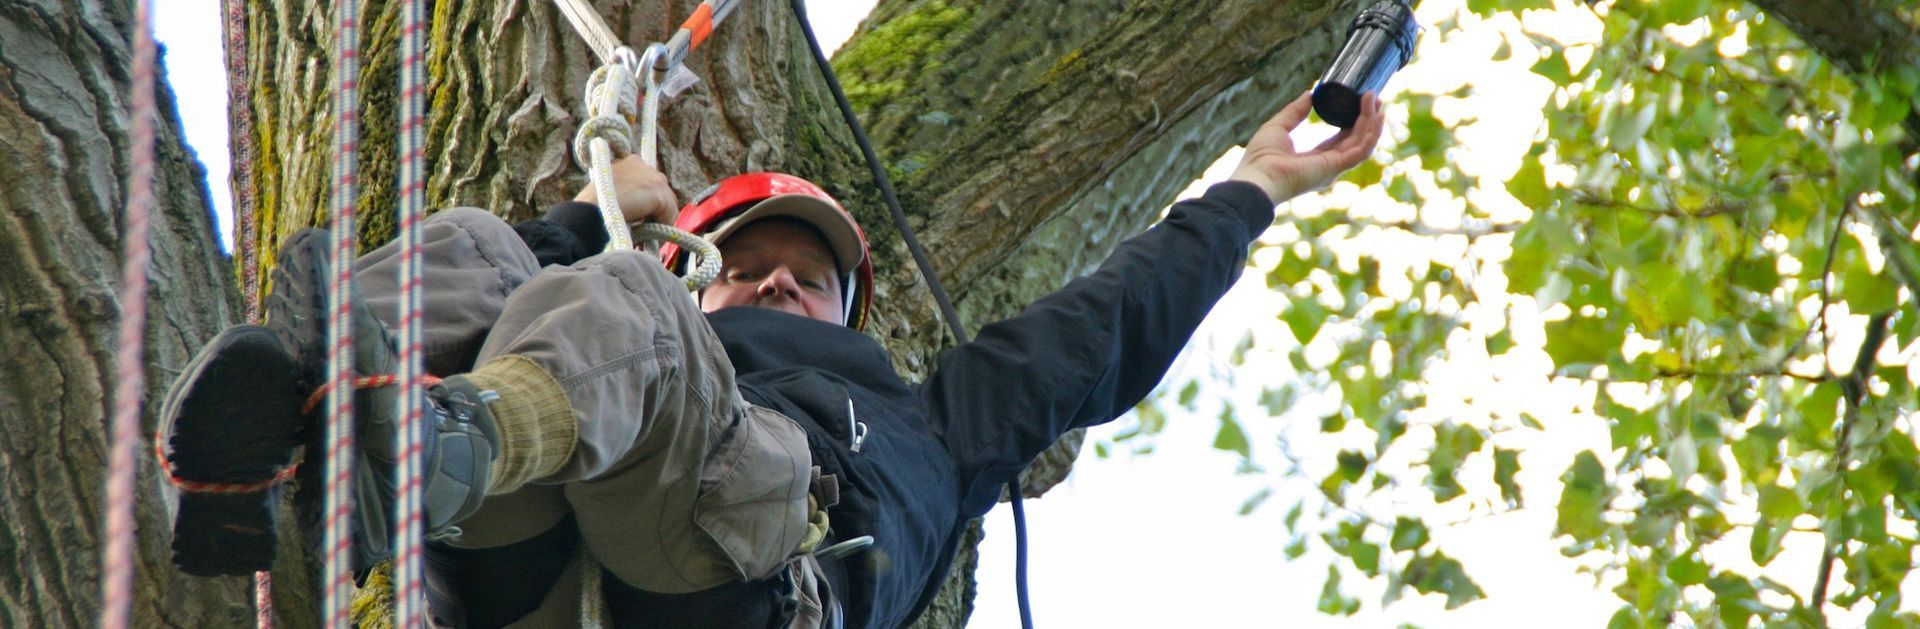 Reddingswerker in bomen - AAB Training & Opleiding